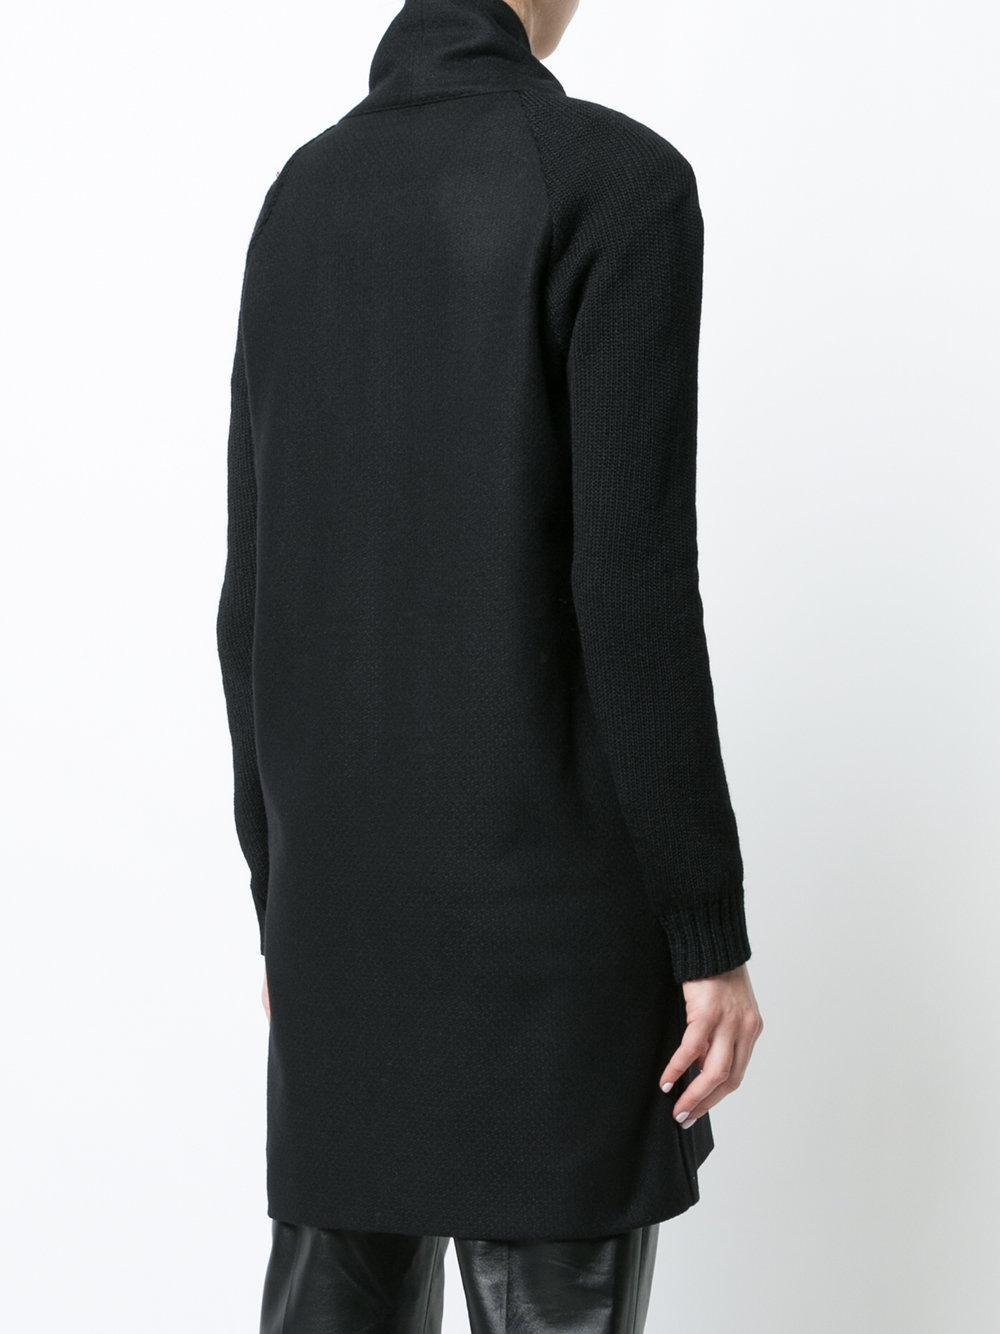 schneider women Shop and buy spring summer '18 stephan schneider womenswear from other shop in london, uk providing a refreshed luxury to wardrobe classics.